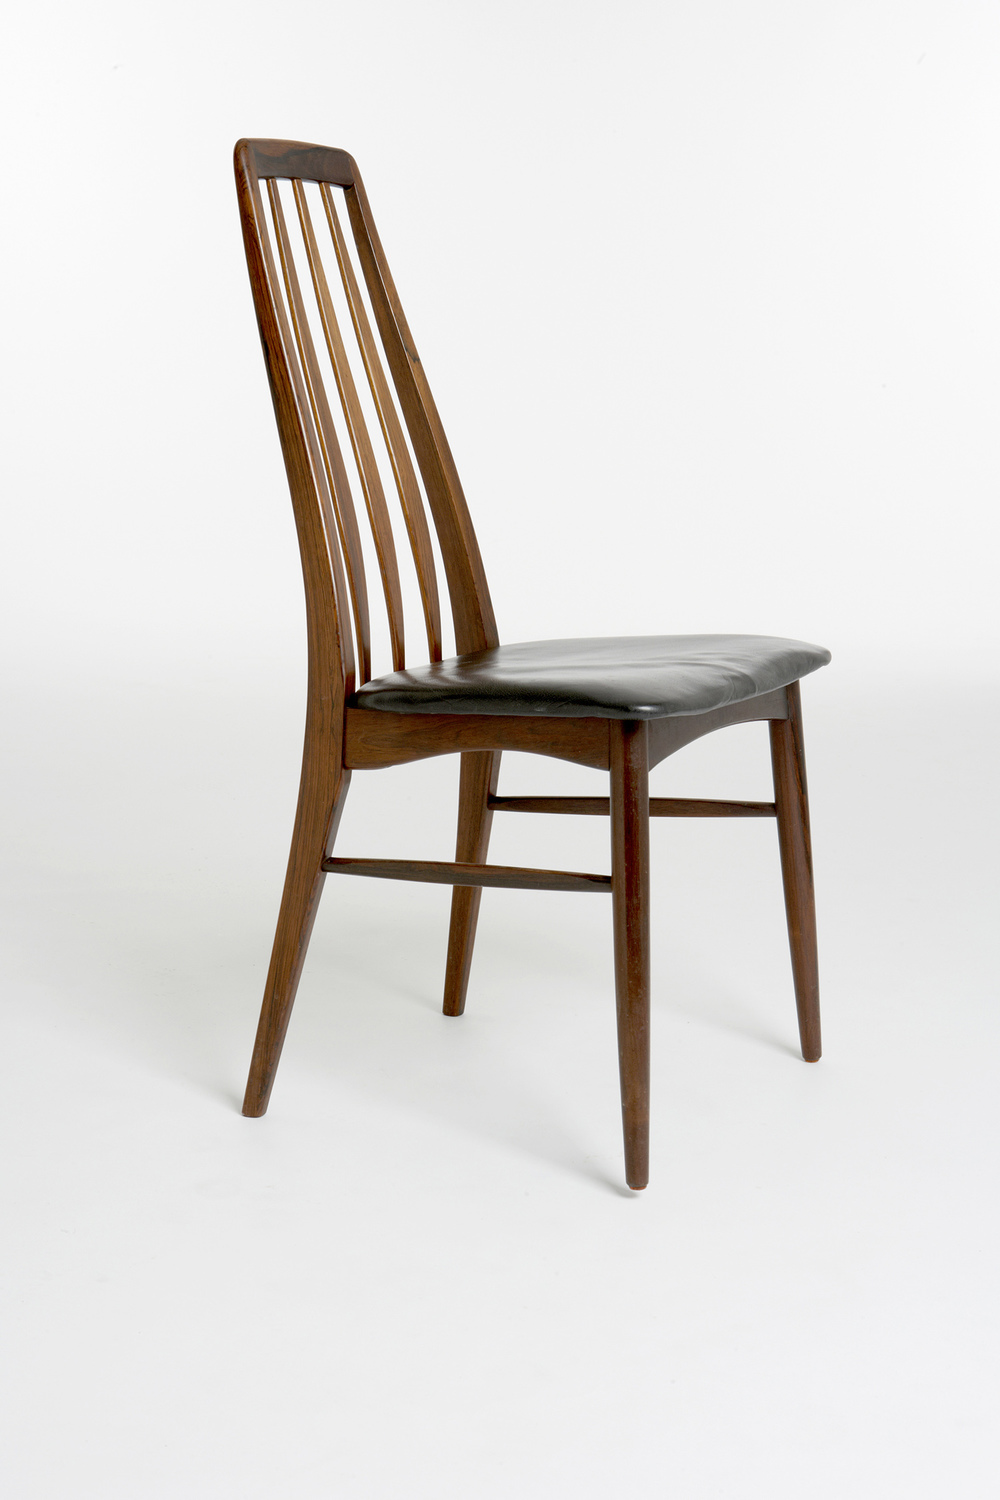 N Kofoed 1964 Spindleback Dining Chair • made 1964-69 •